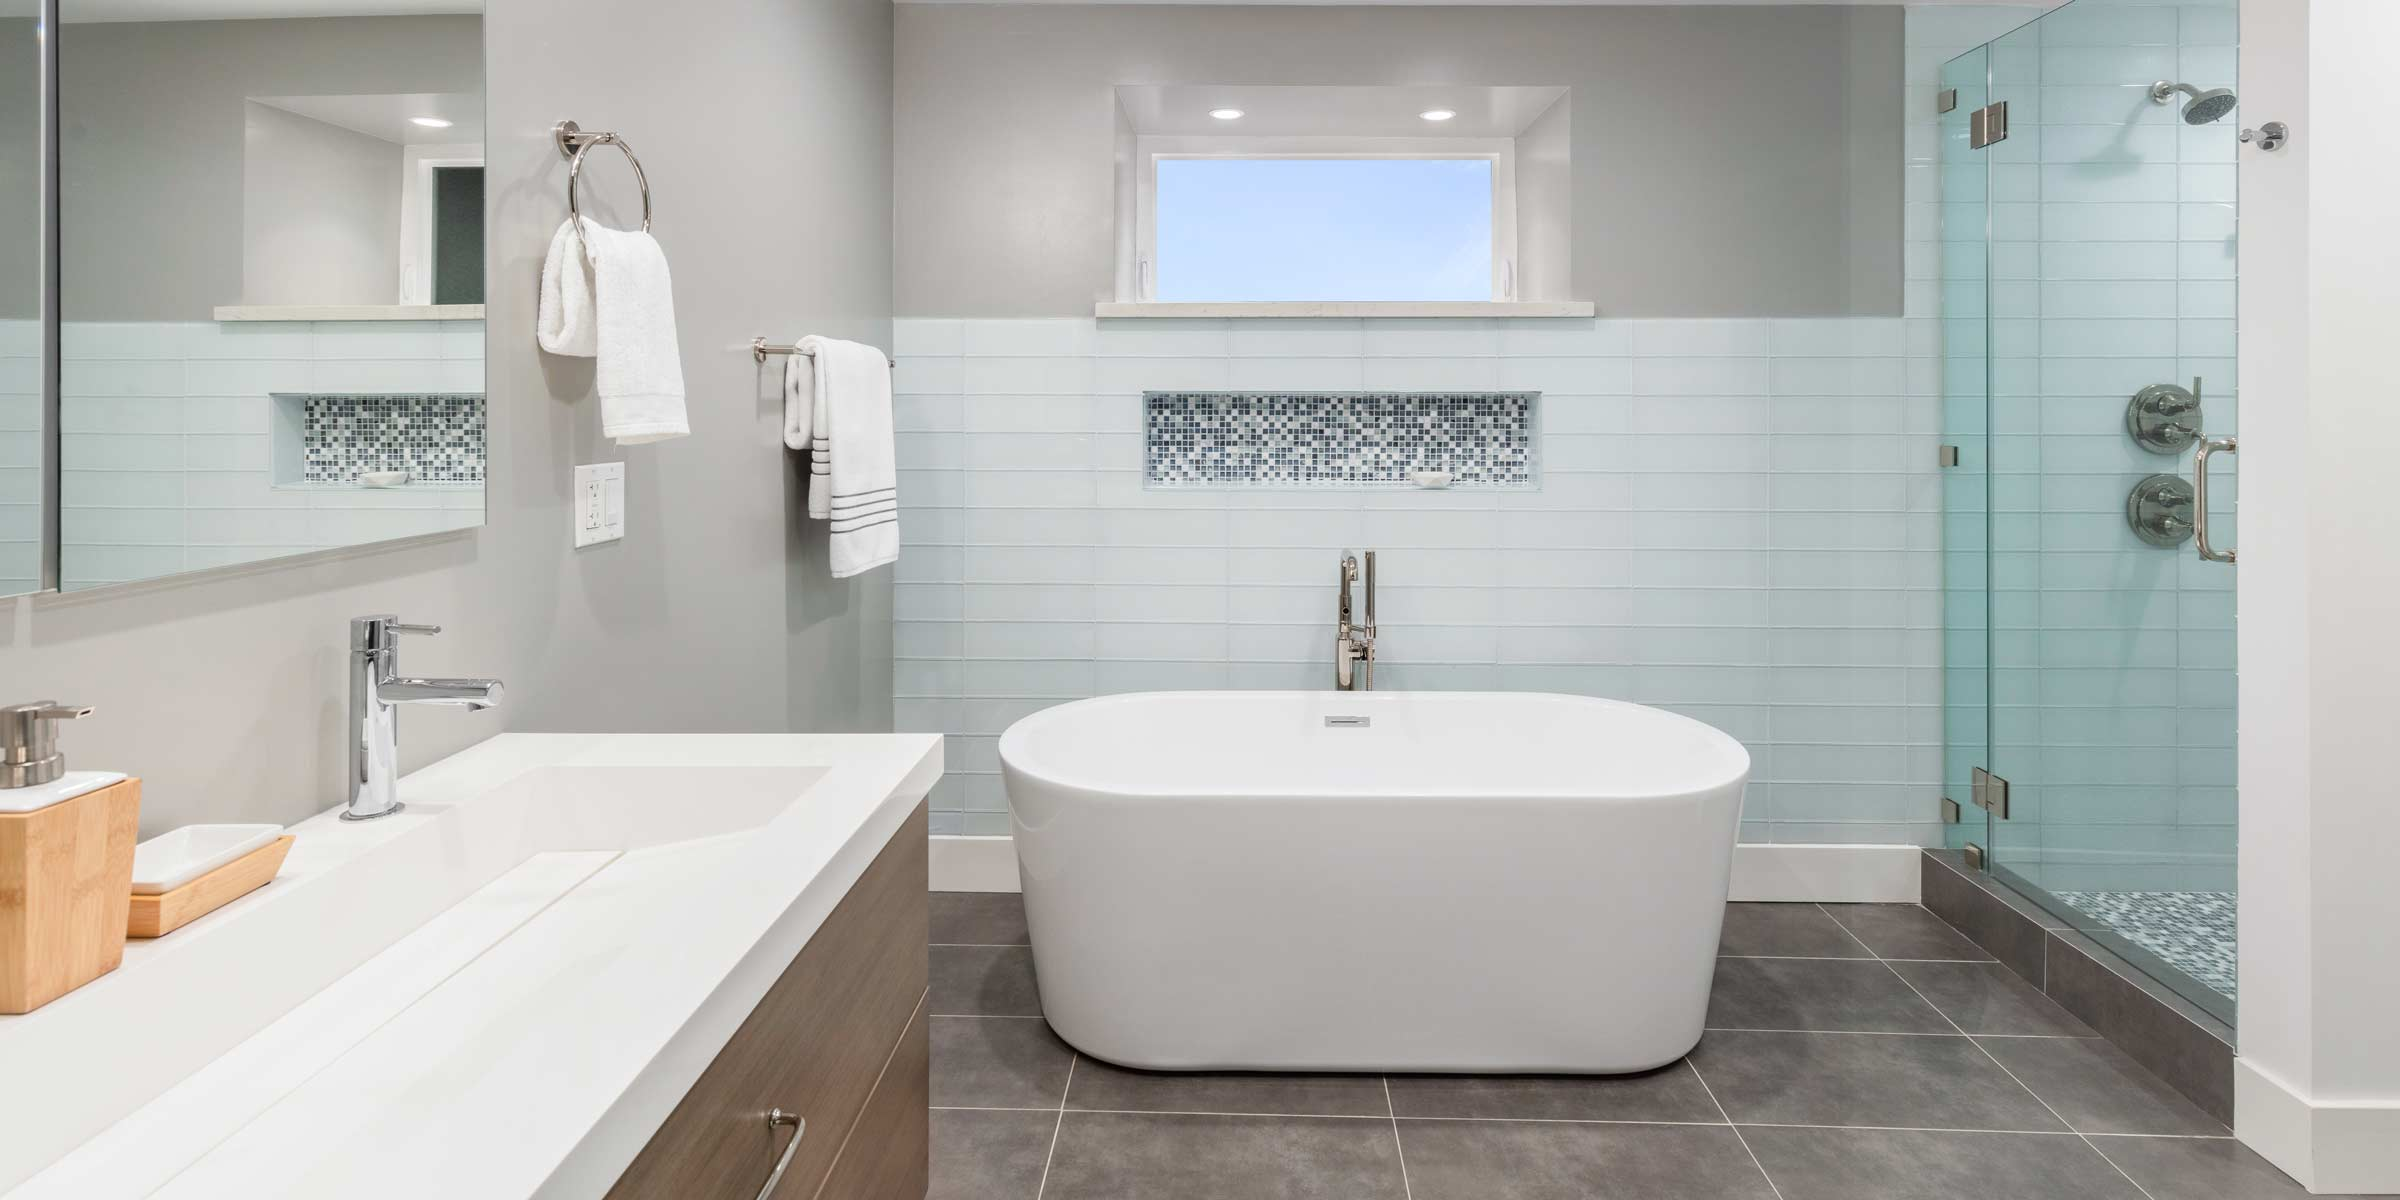 Budget Bathroom Renovation Costs - What You Can Expect